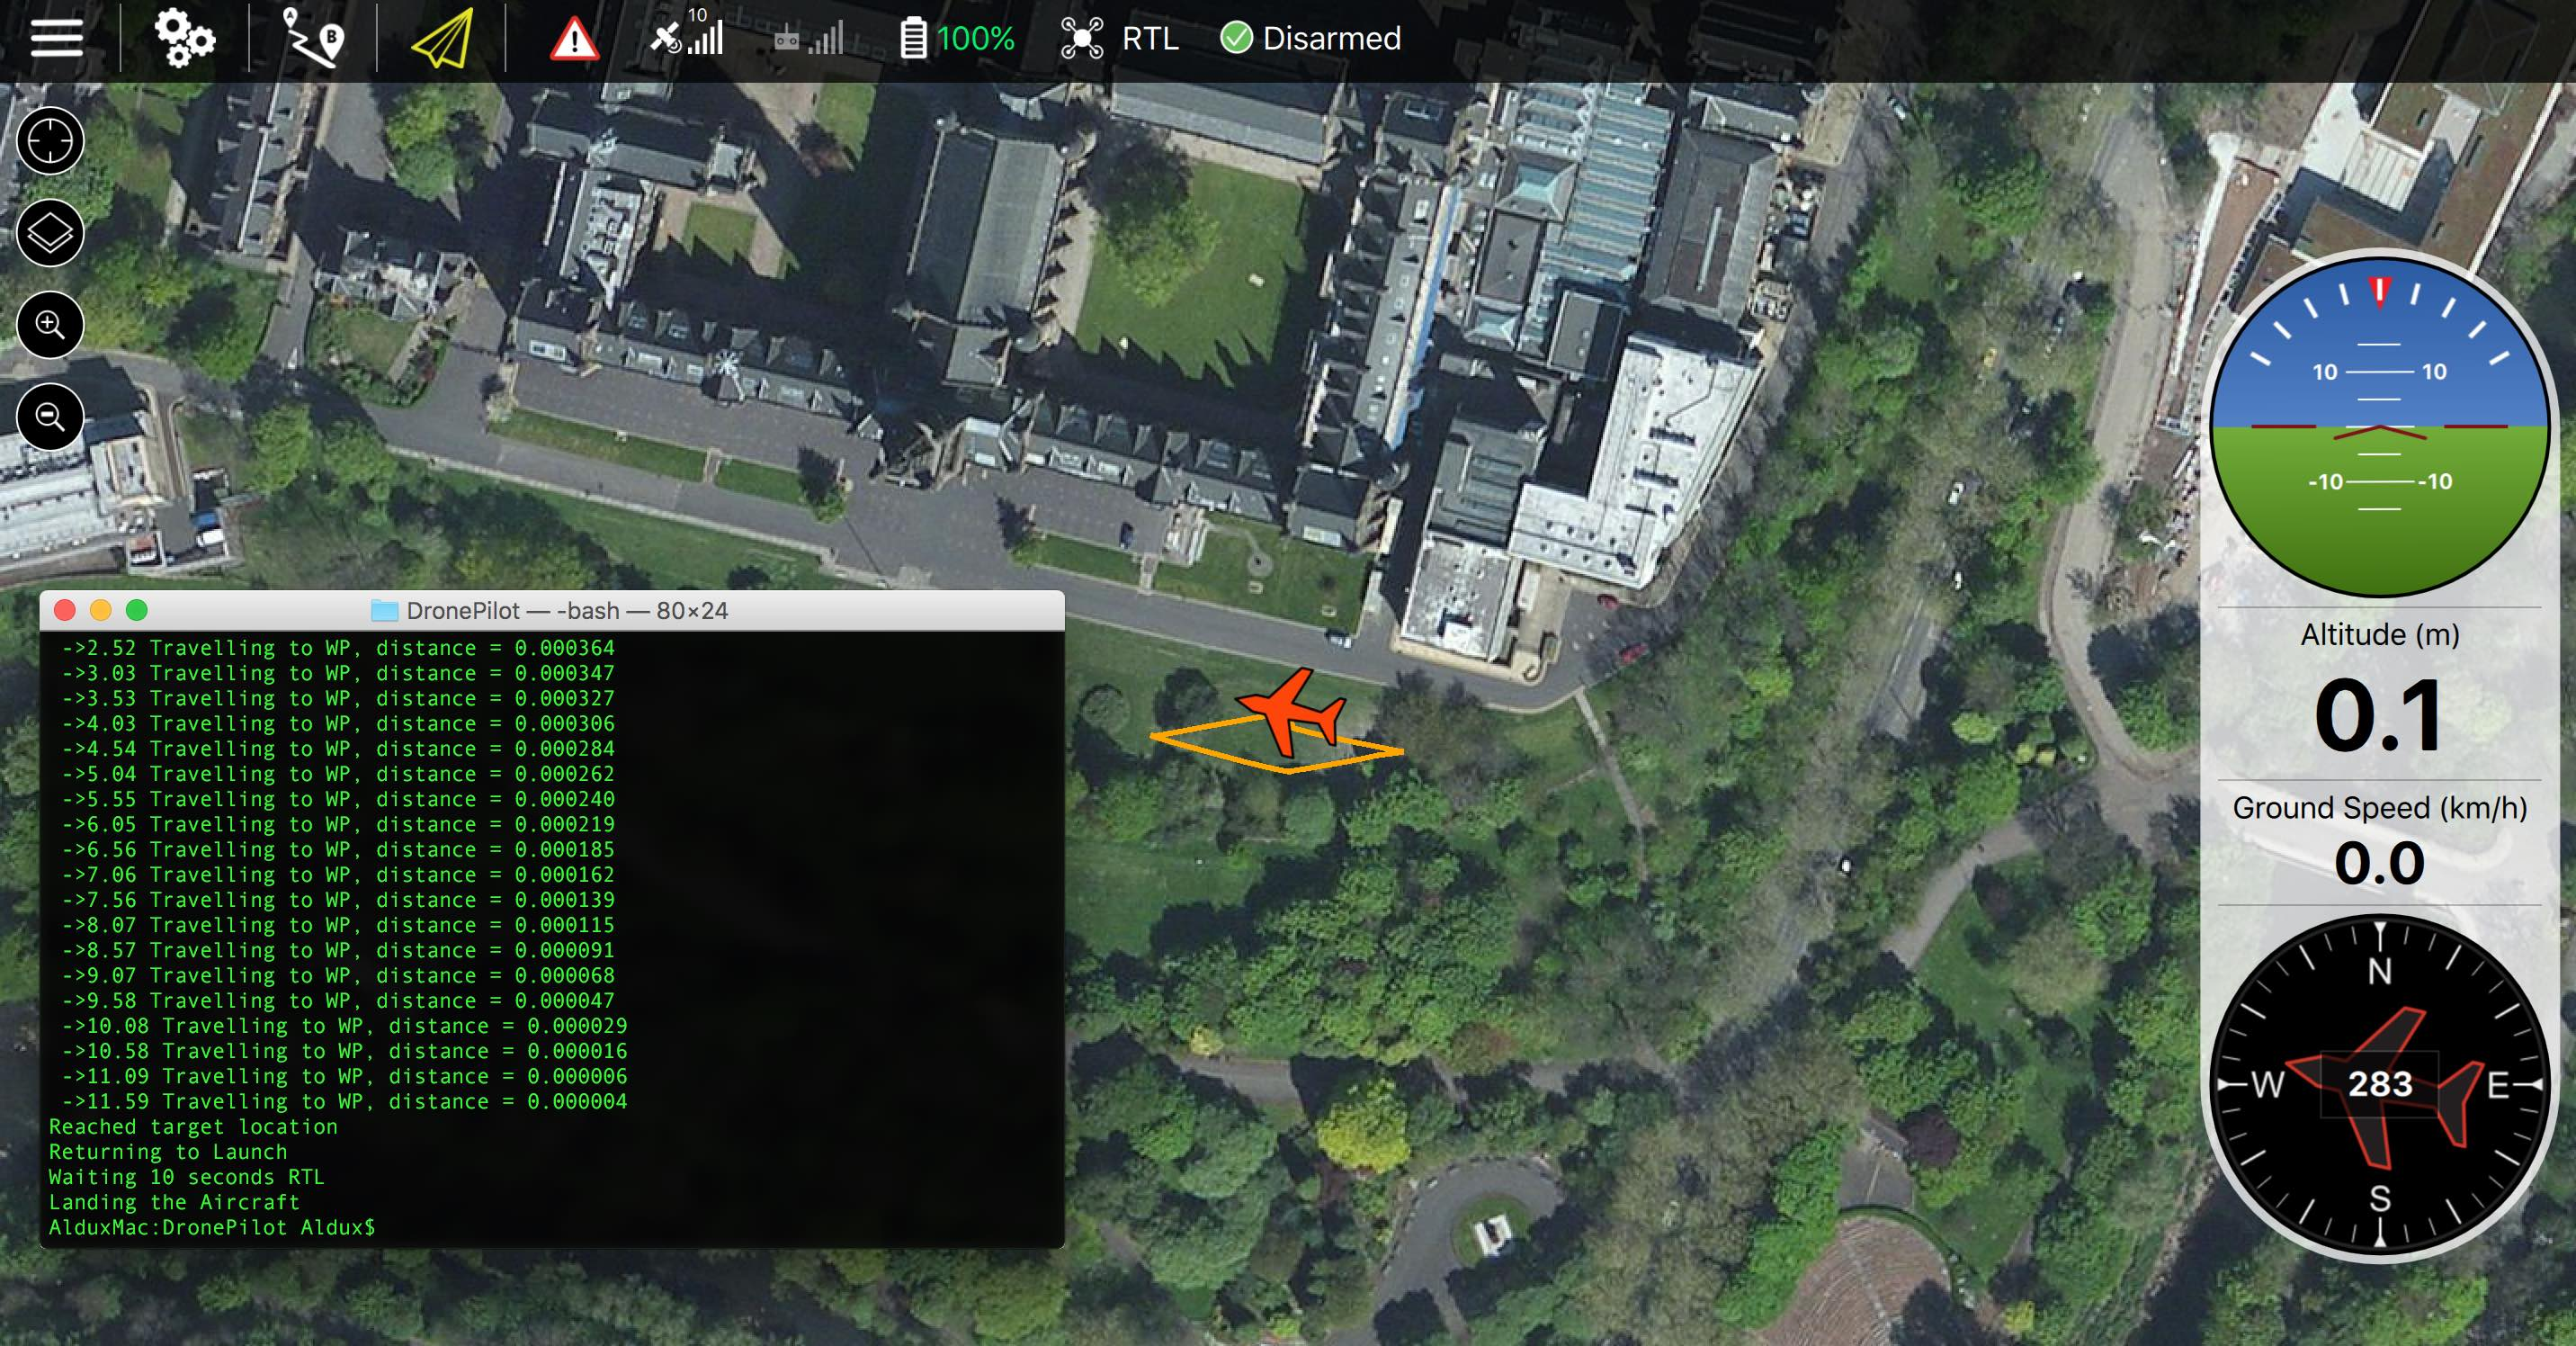 GitHub - alduxvm/DronePilot: Automatic pilot that can control and